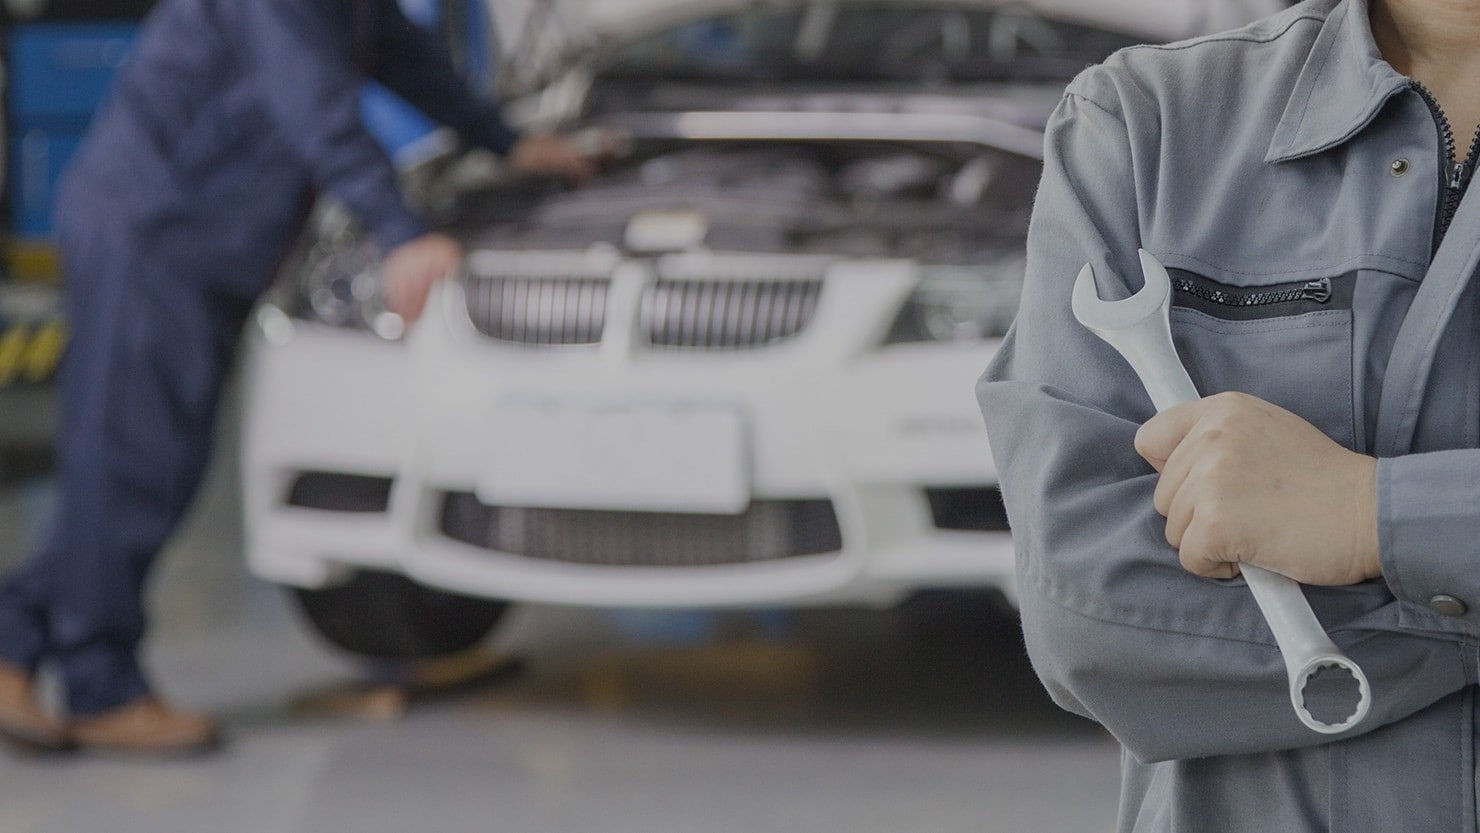 Regular Fleet Maintenance to Keep Your Fleet Running in Good Condition